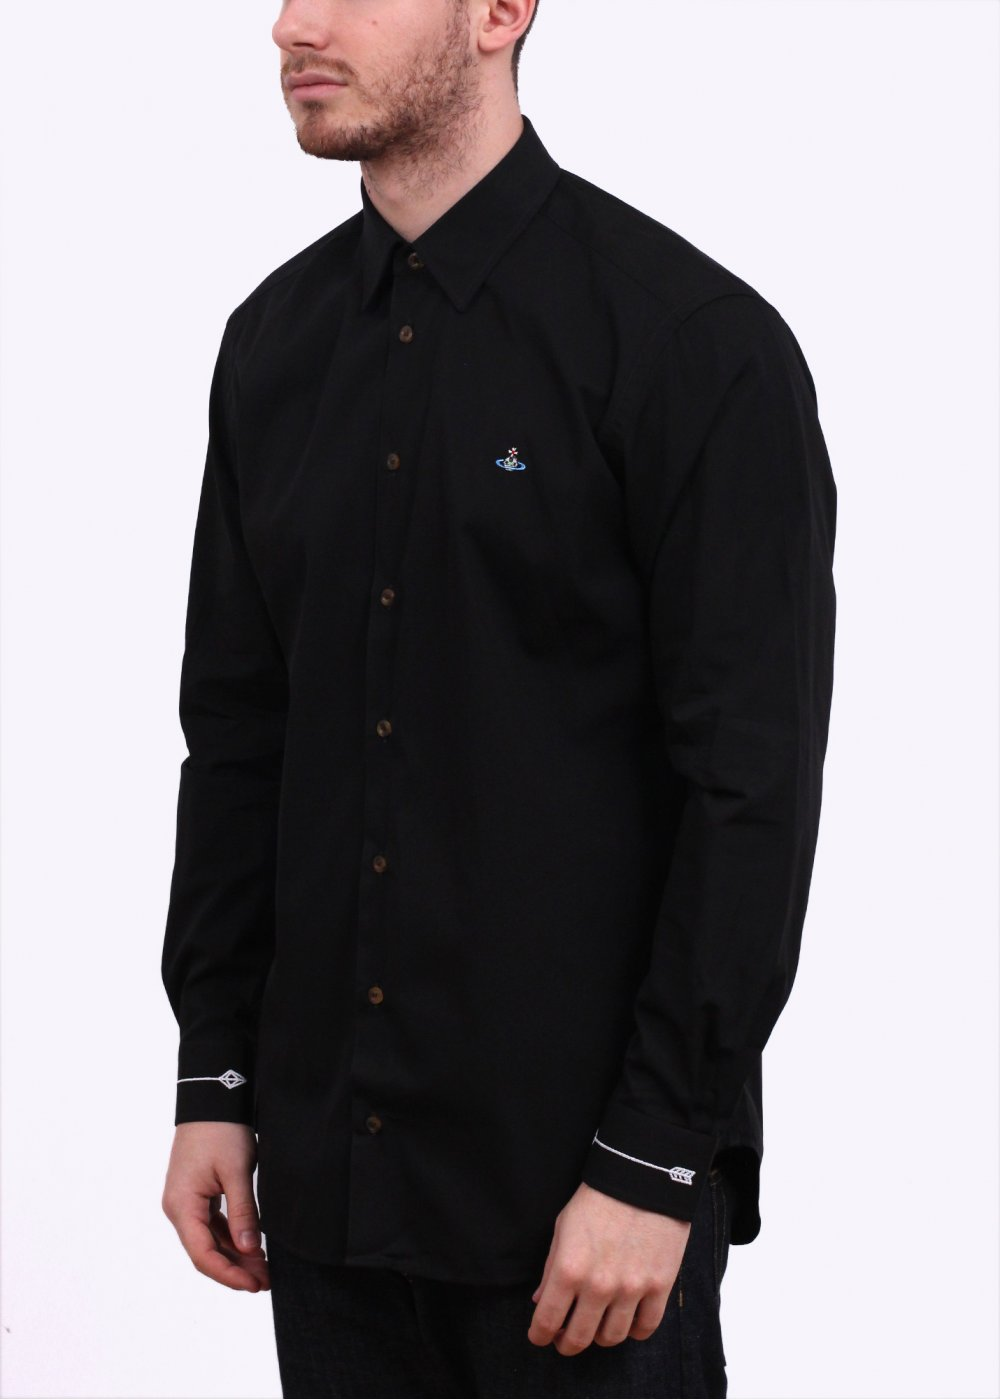 Vivienne Westwood Embroidered Cuff Shirt Black